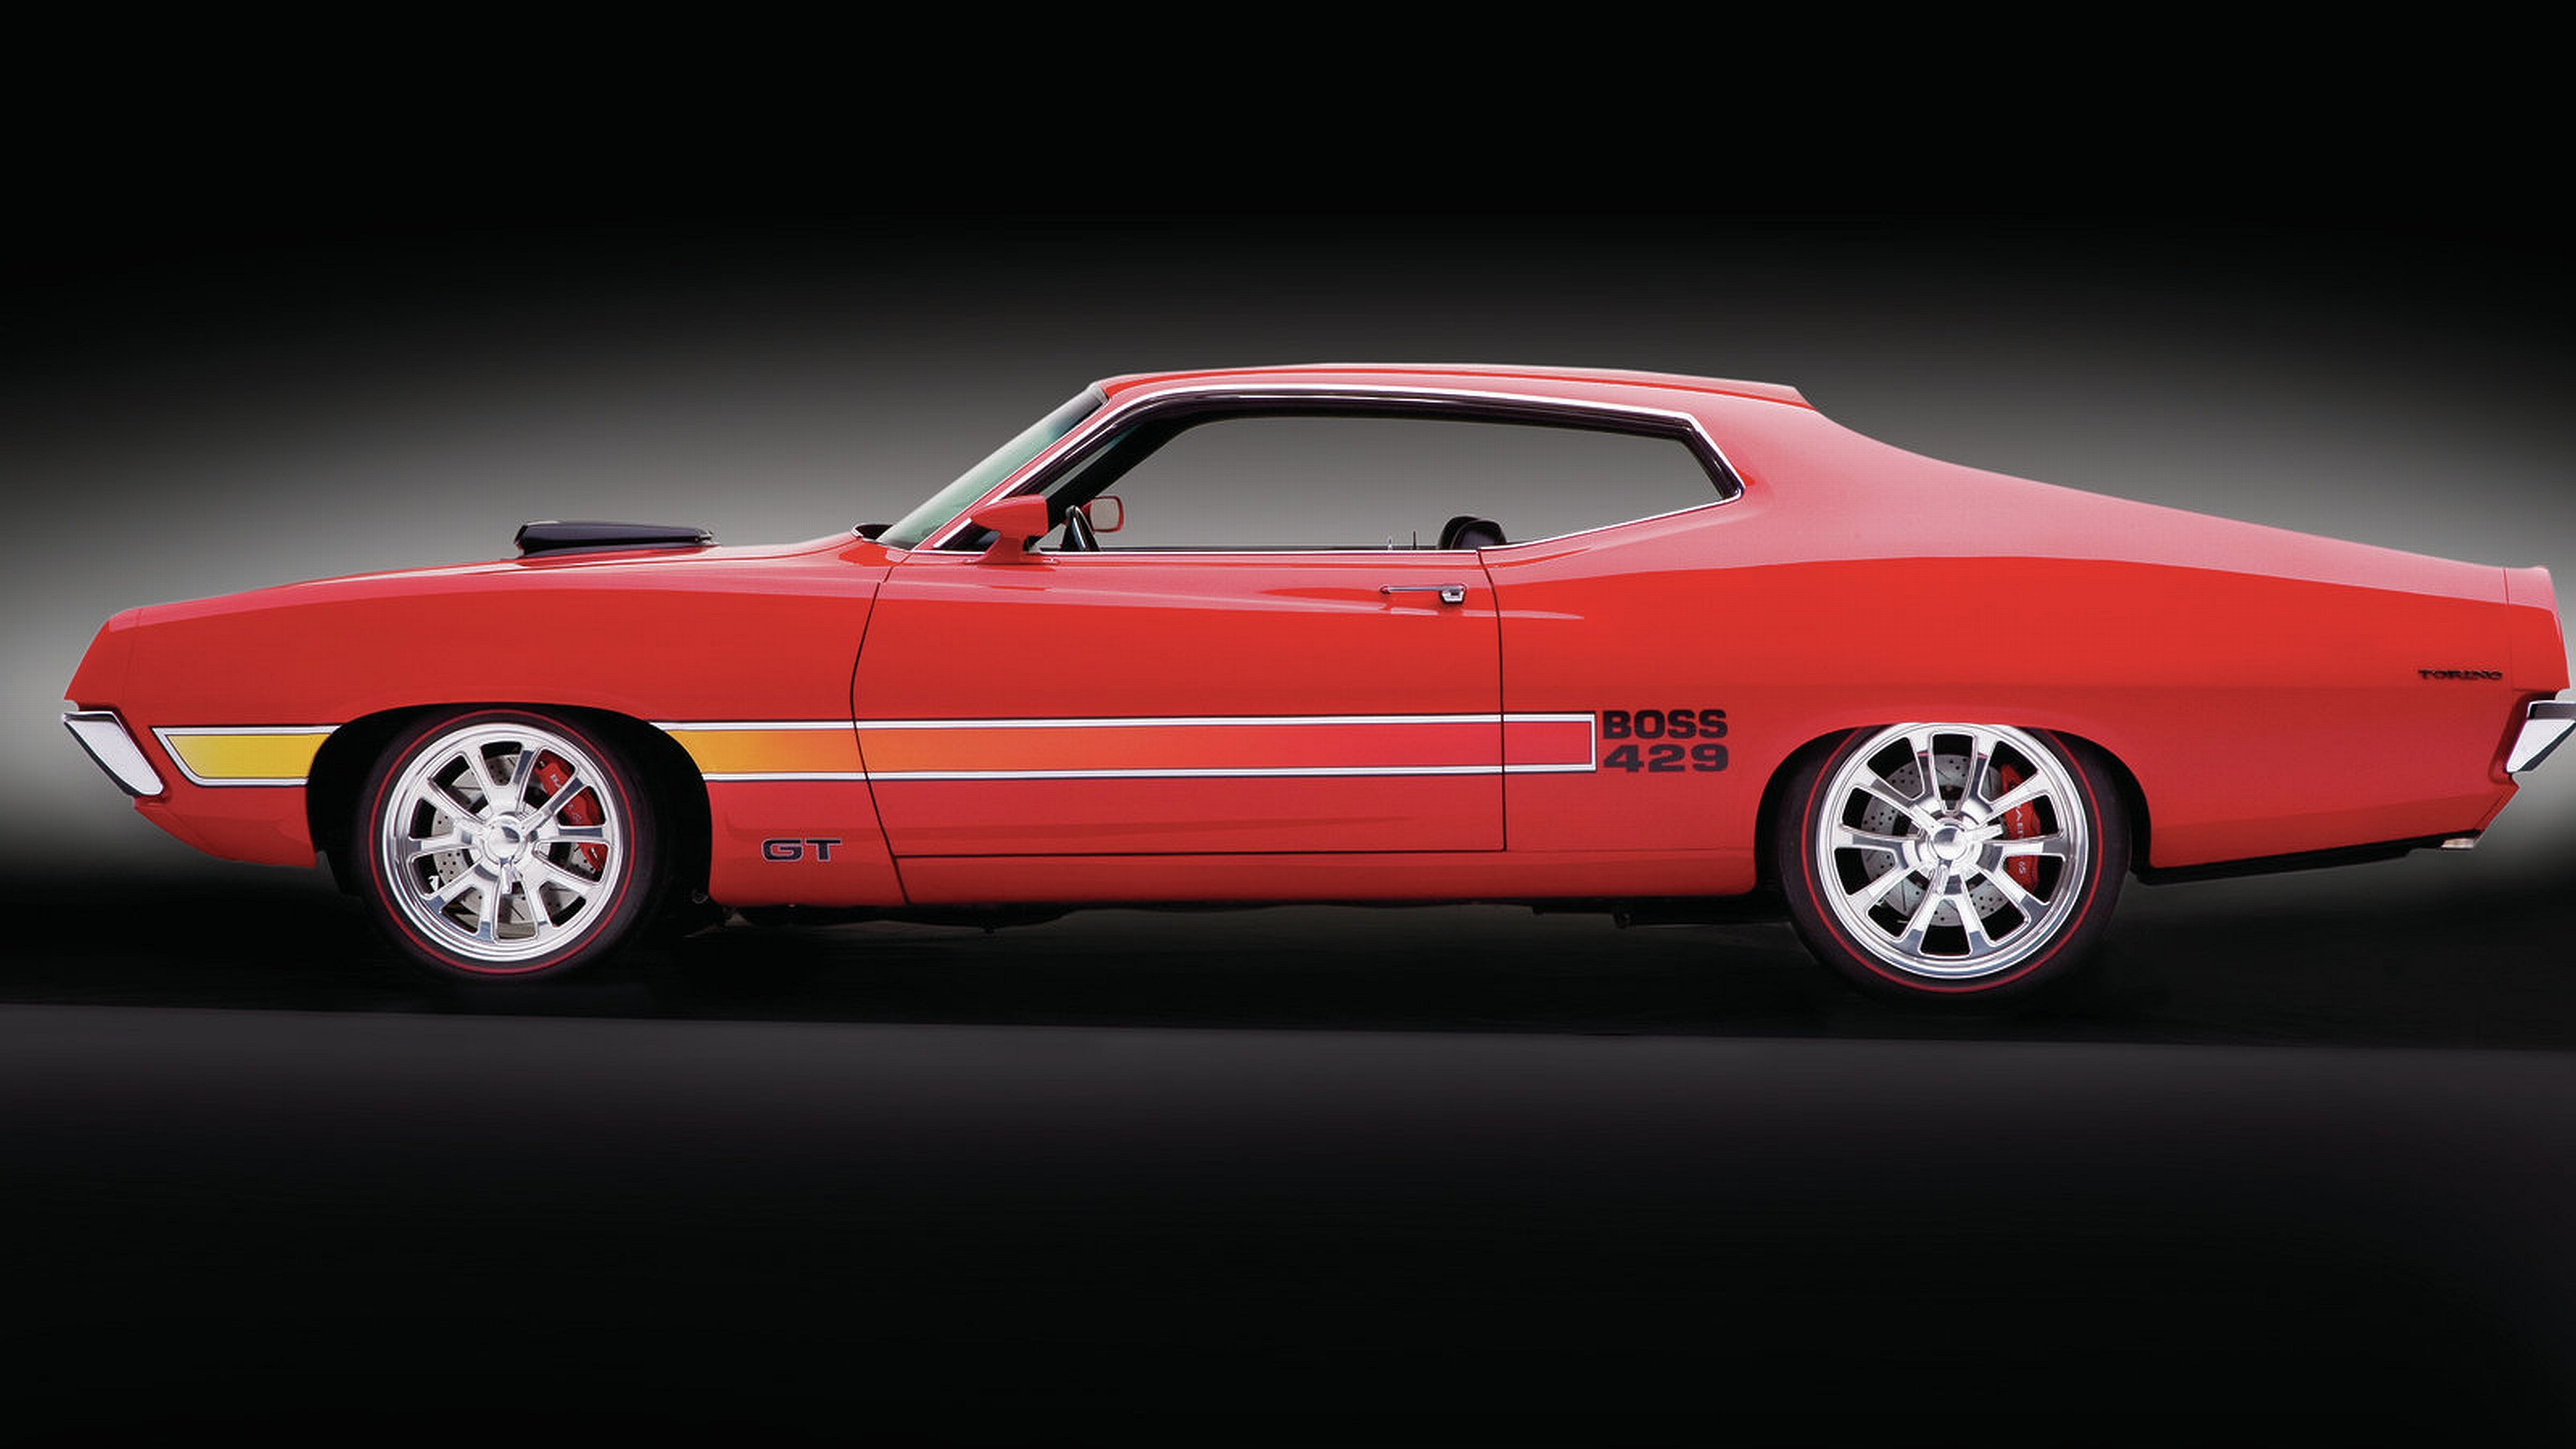 3840x2160 - Ford Torino Wallpapers 14